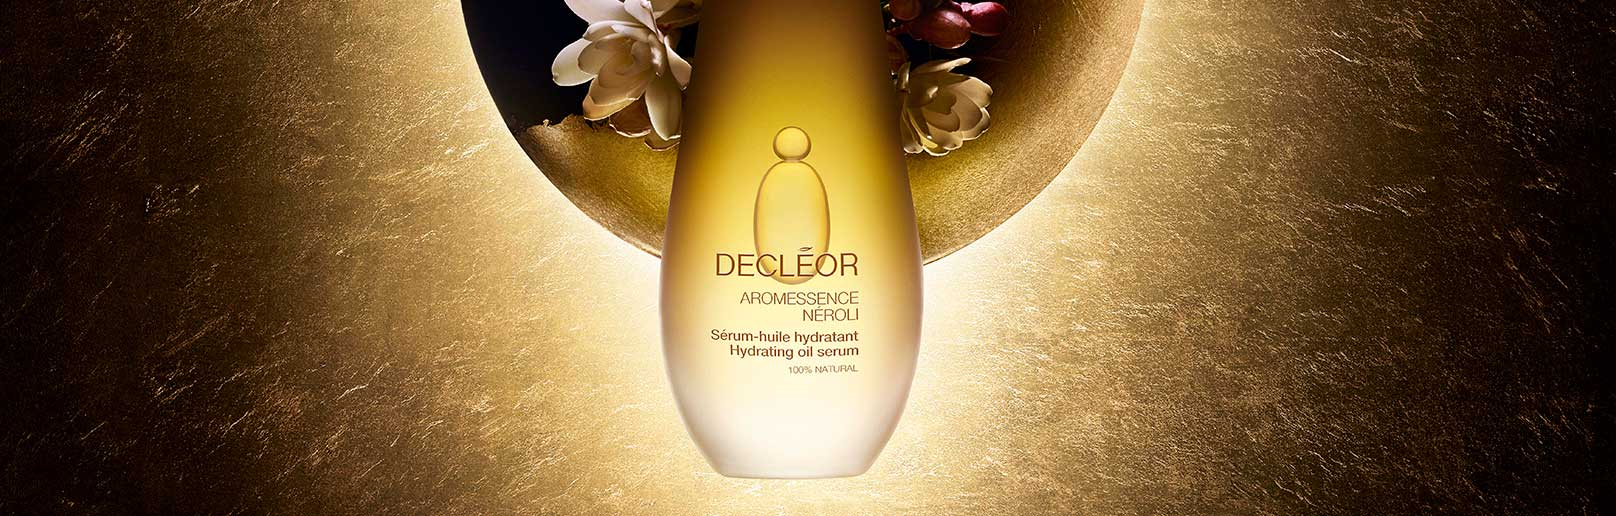 Decléor Aromessence massage oil